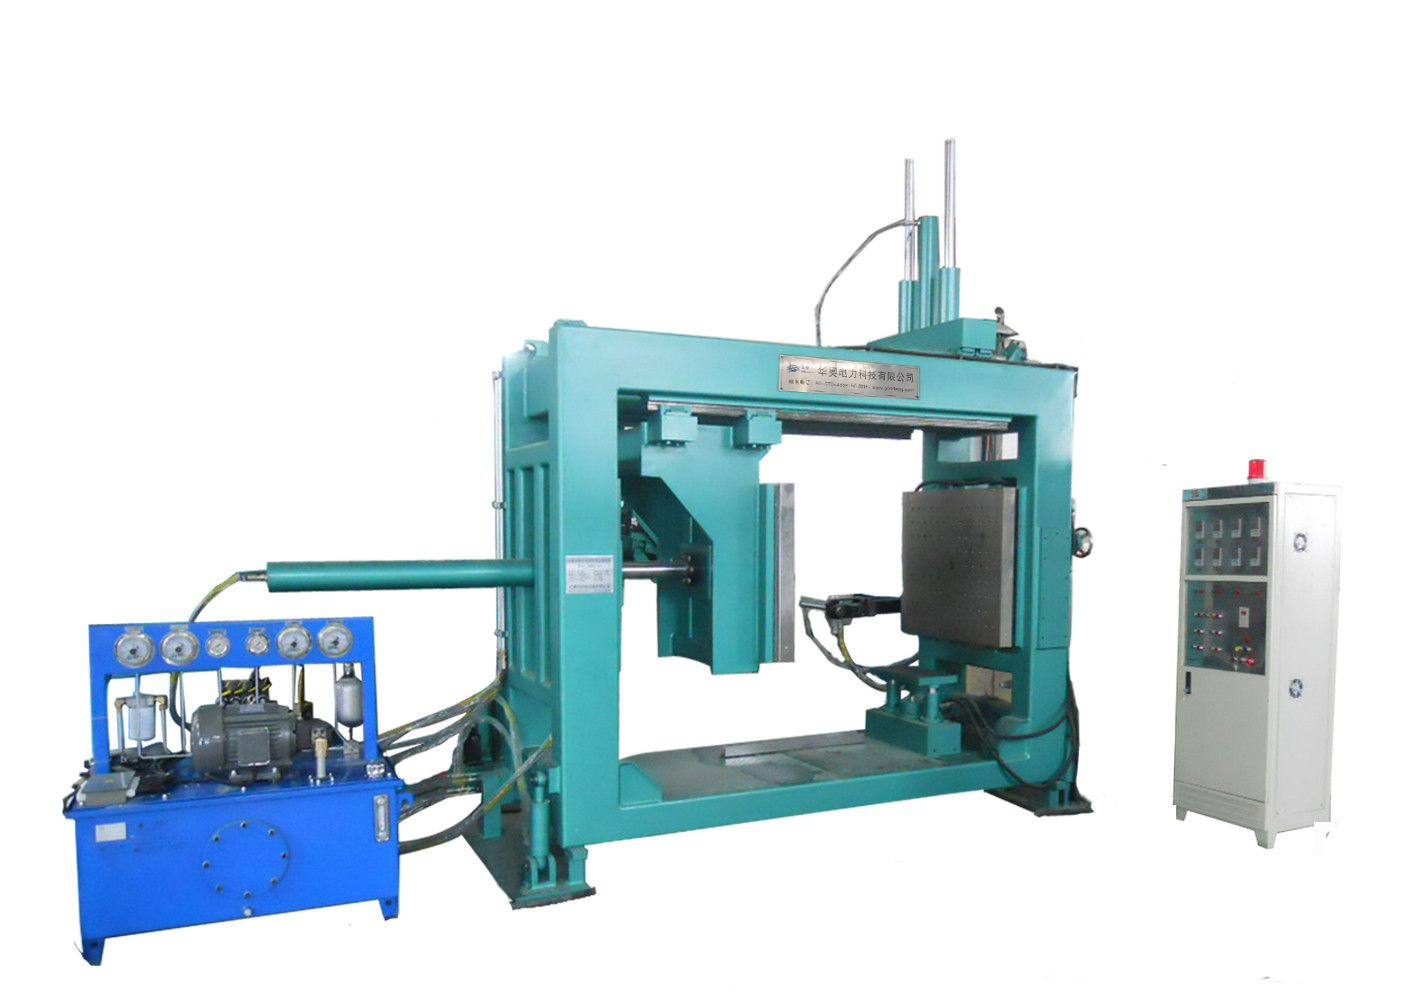 Standard APG Clamping Machine, APG Casting Machine, APG Clamping Machine for APG Process